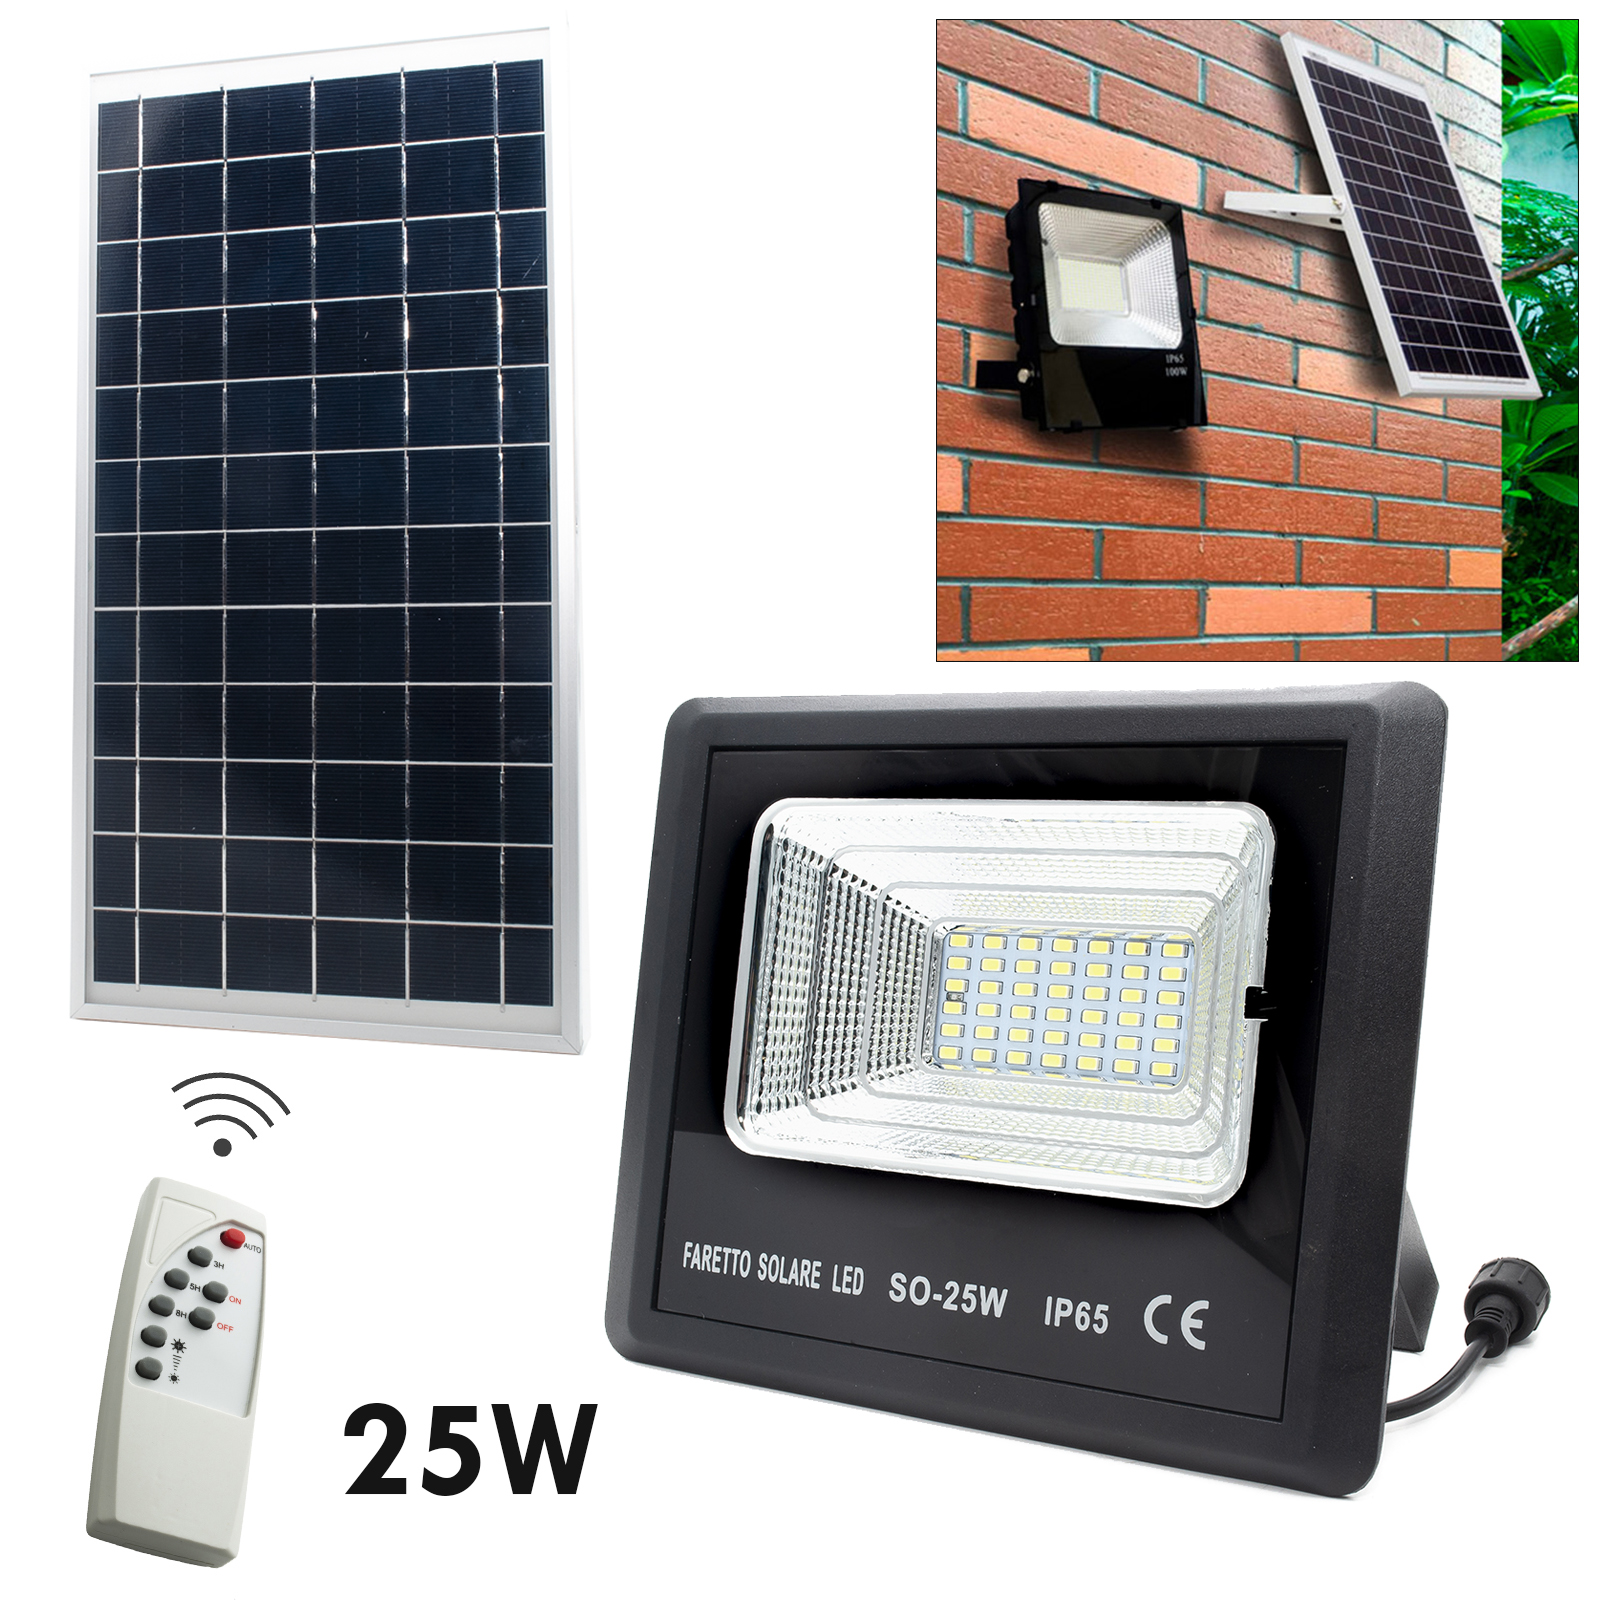 LED spotlight light sensor 25W panel solar lights security 6000K IP65